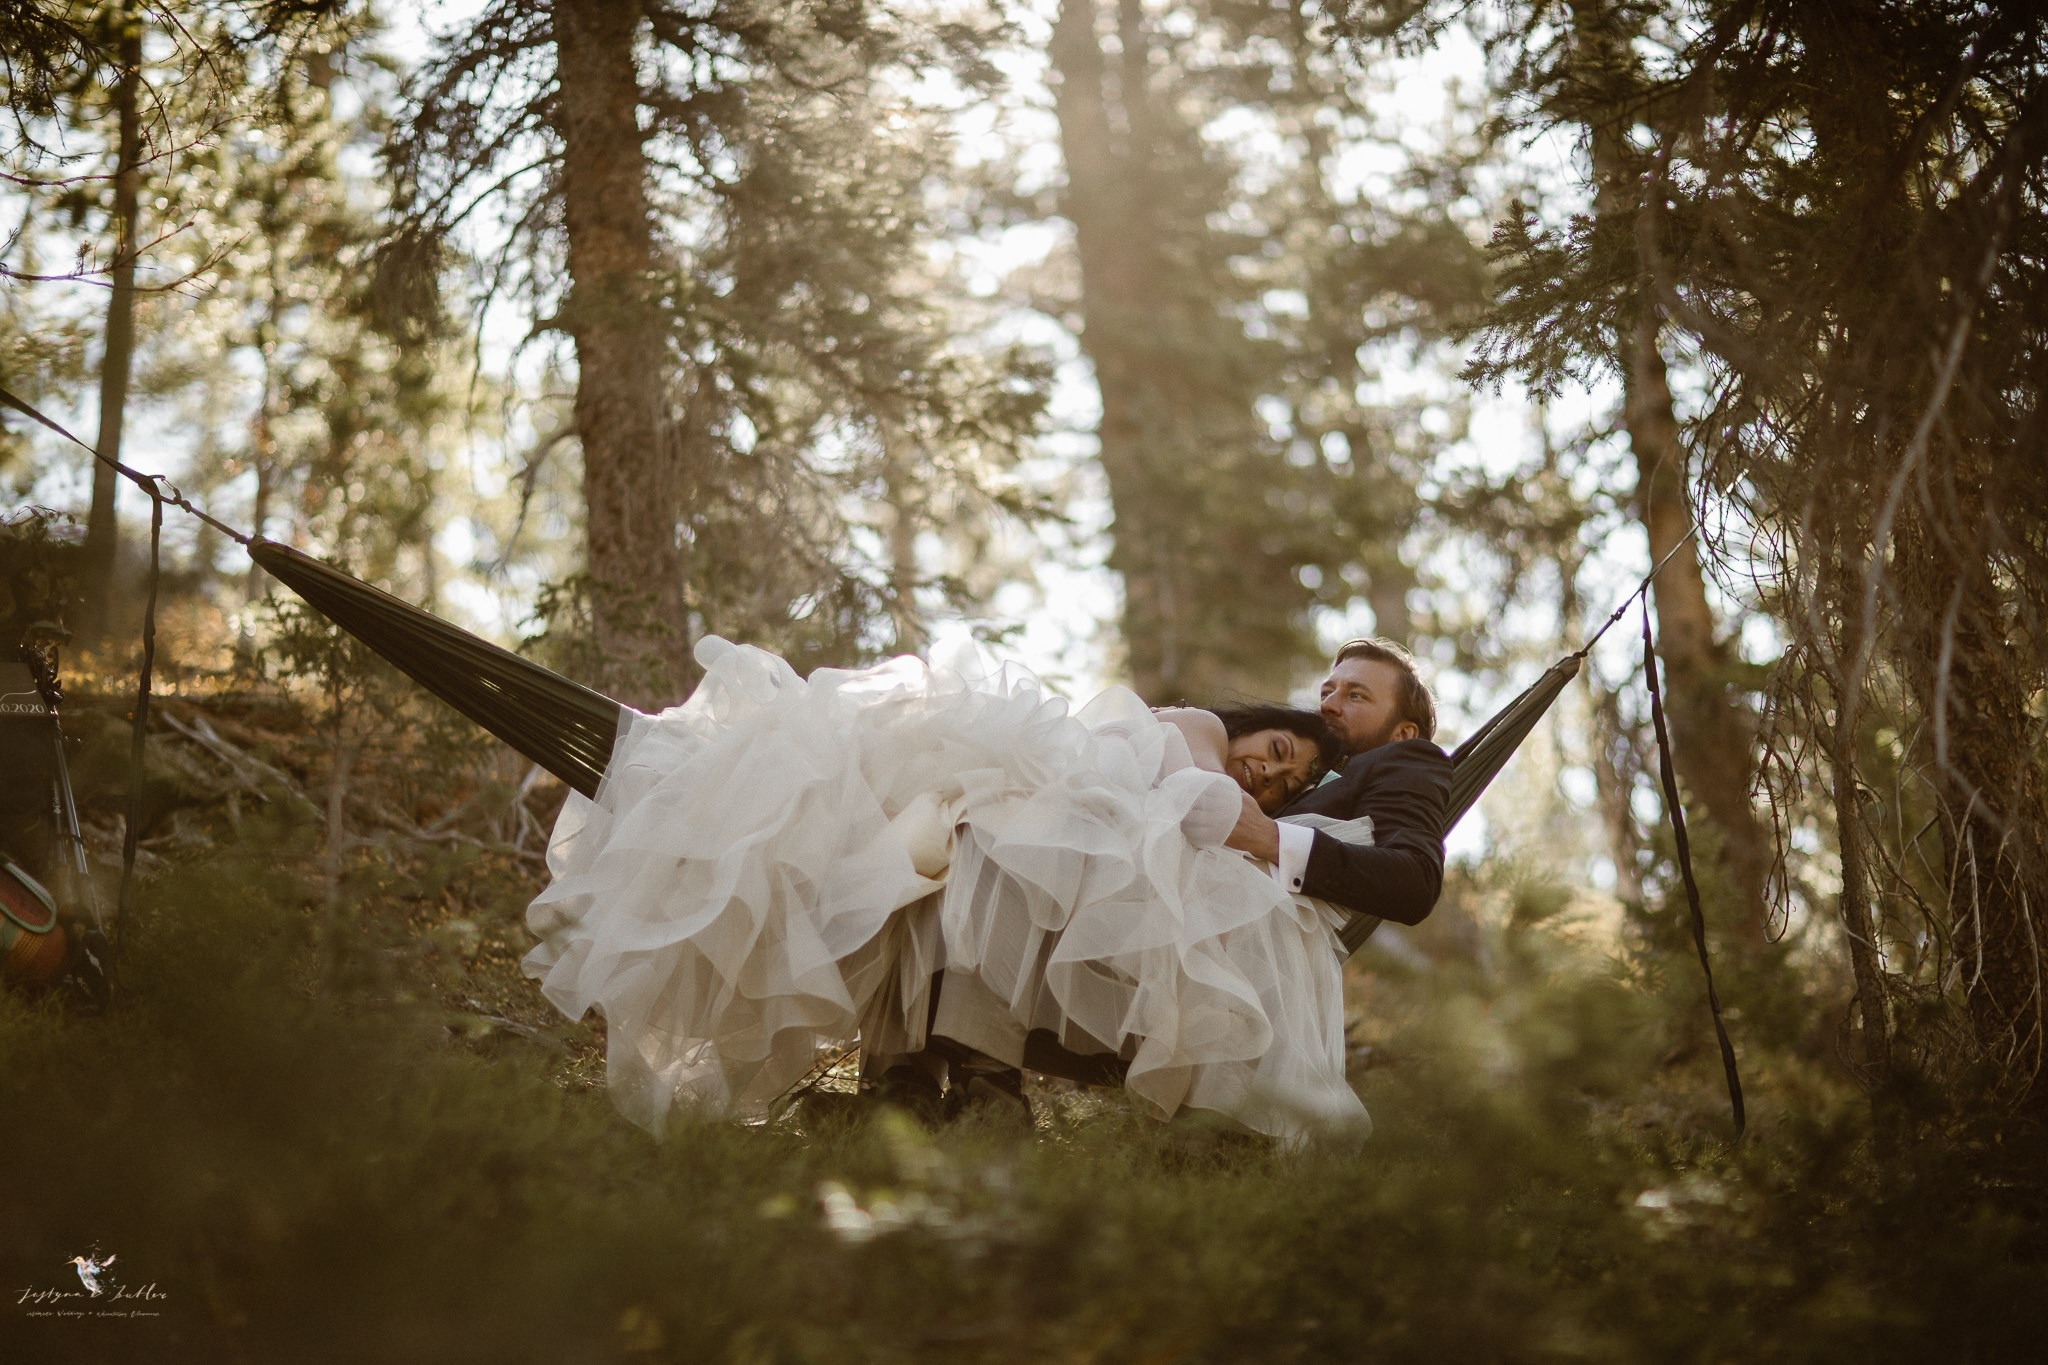 Springing Forward by Looking Back   2020 Elopements   Justyna E Butler Photography   Colorado Adventure Weddings and Elopements Year in A Review